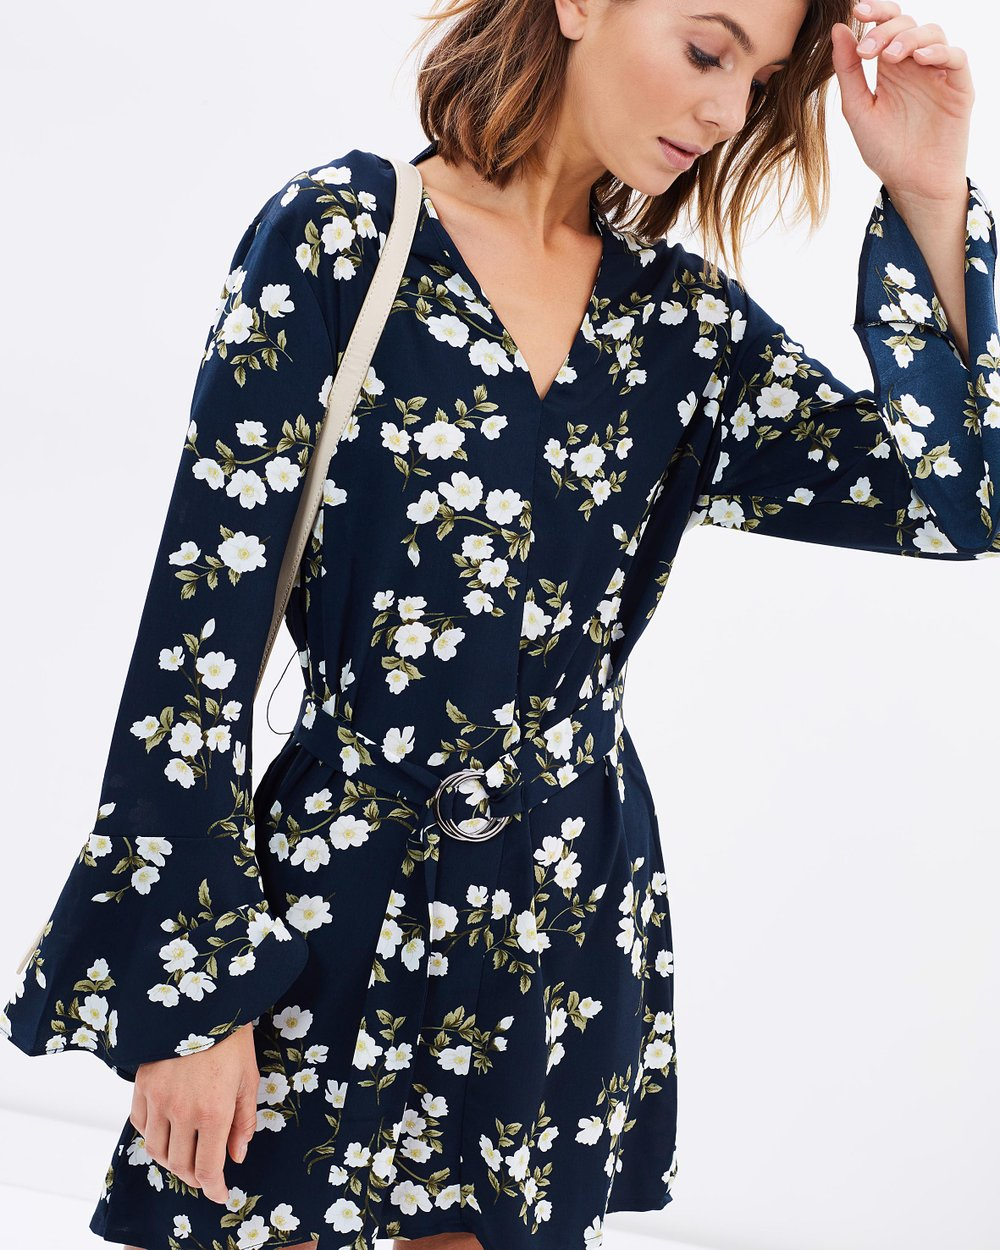 Women s fashion top 9 must haves in the wardrobe lulu rose - Gully Flared Sleeve Dress By Lulu Rose Online The Iconic Australia